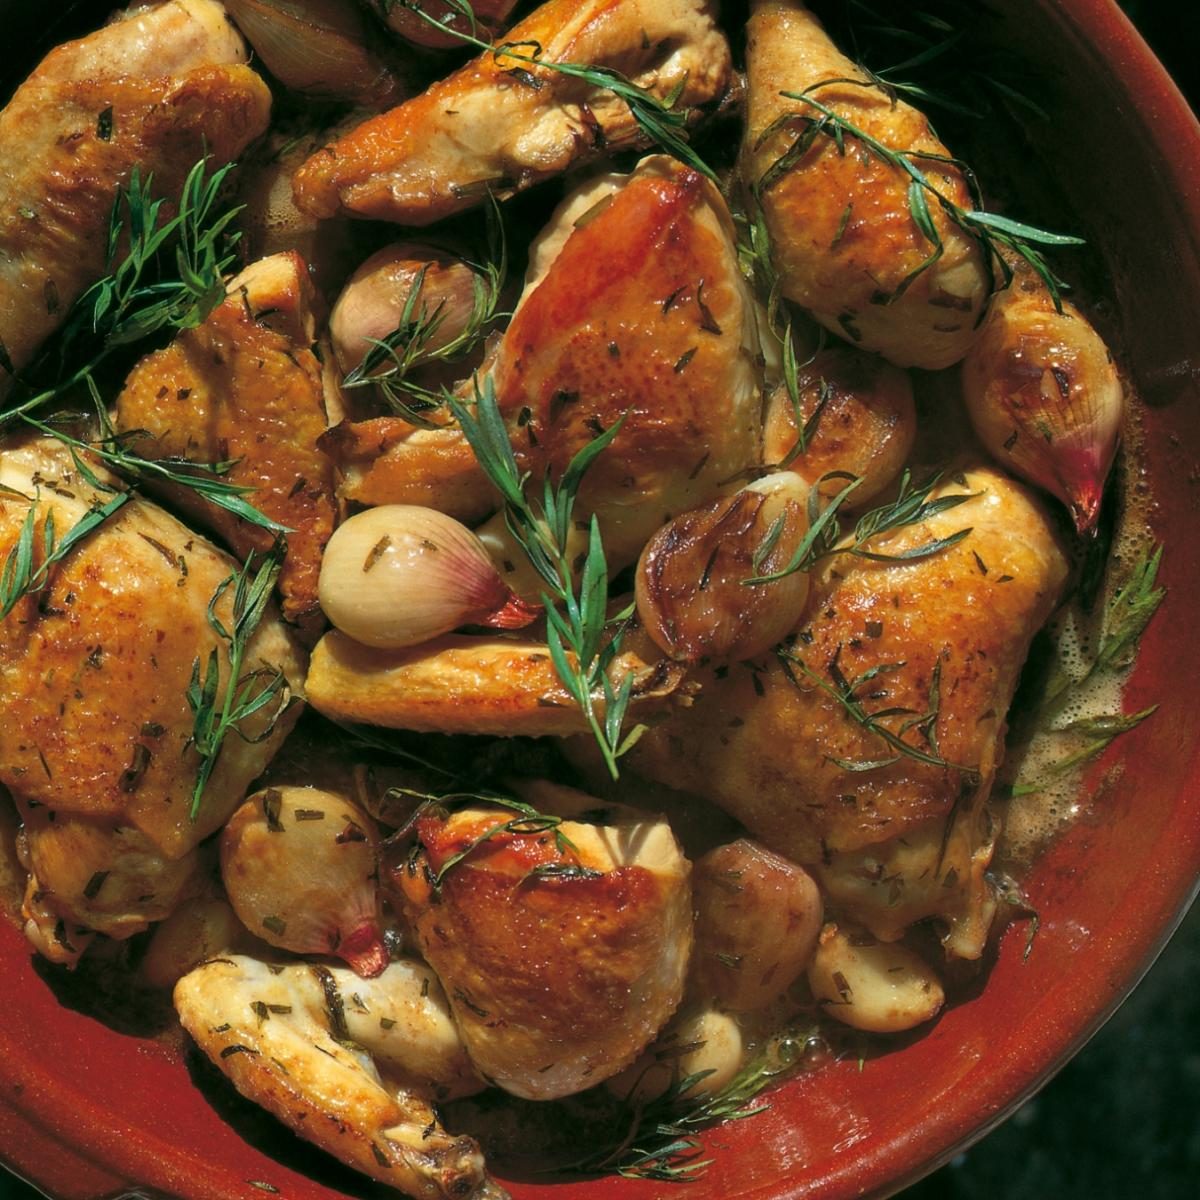 Summer chicken with sherry vinegar and tarragon sauce